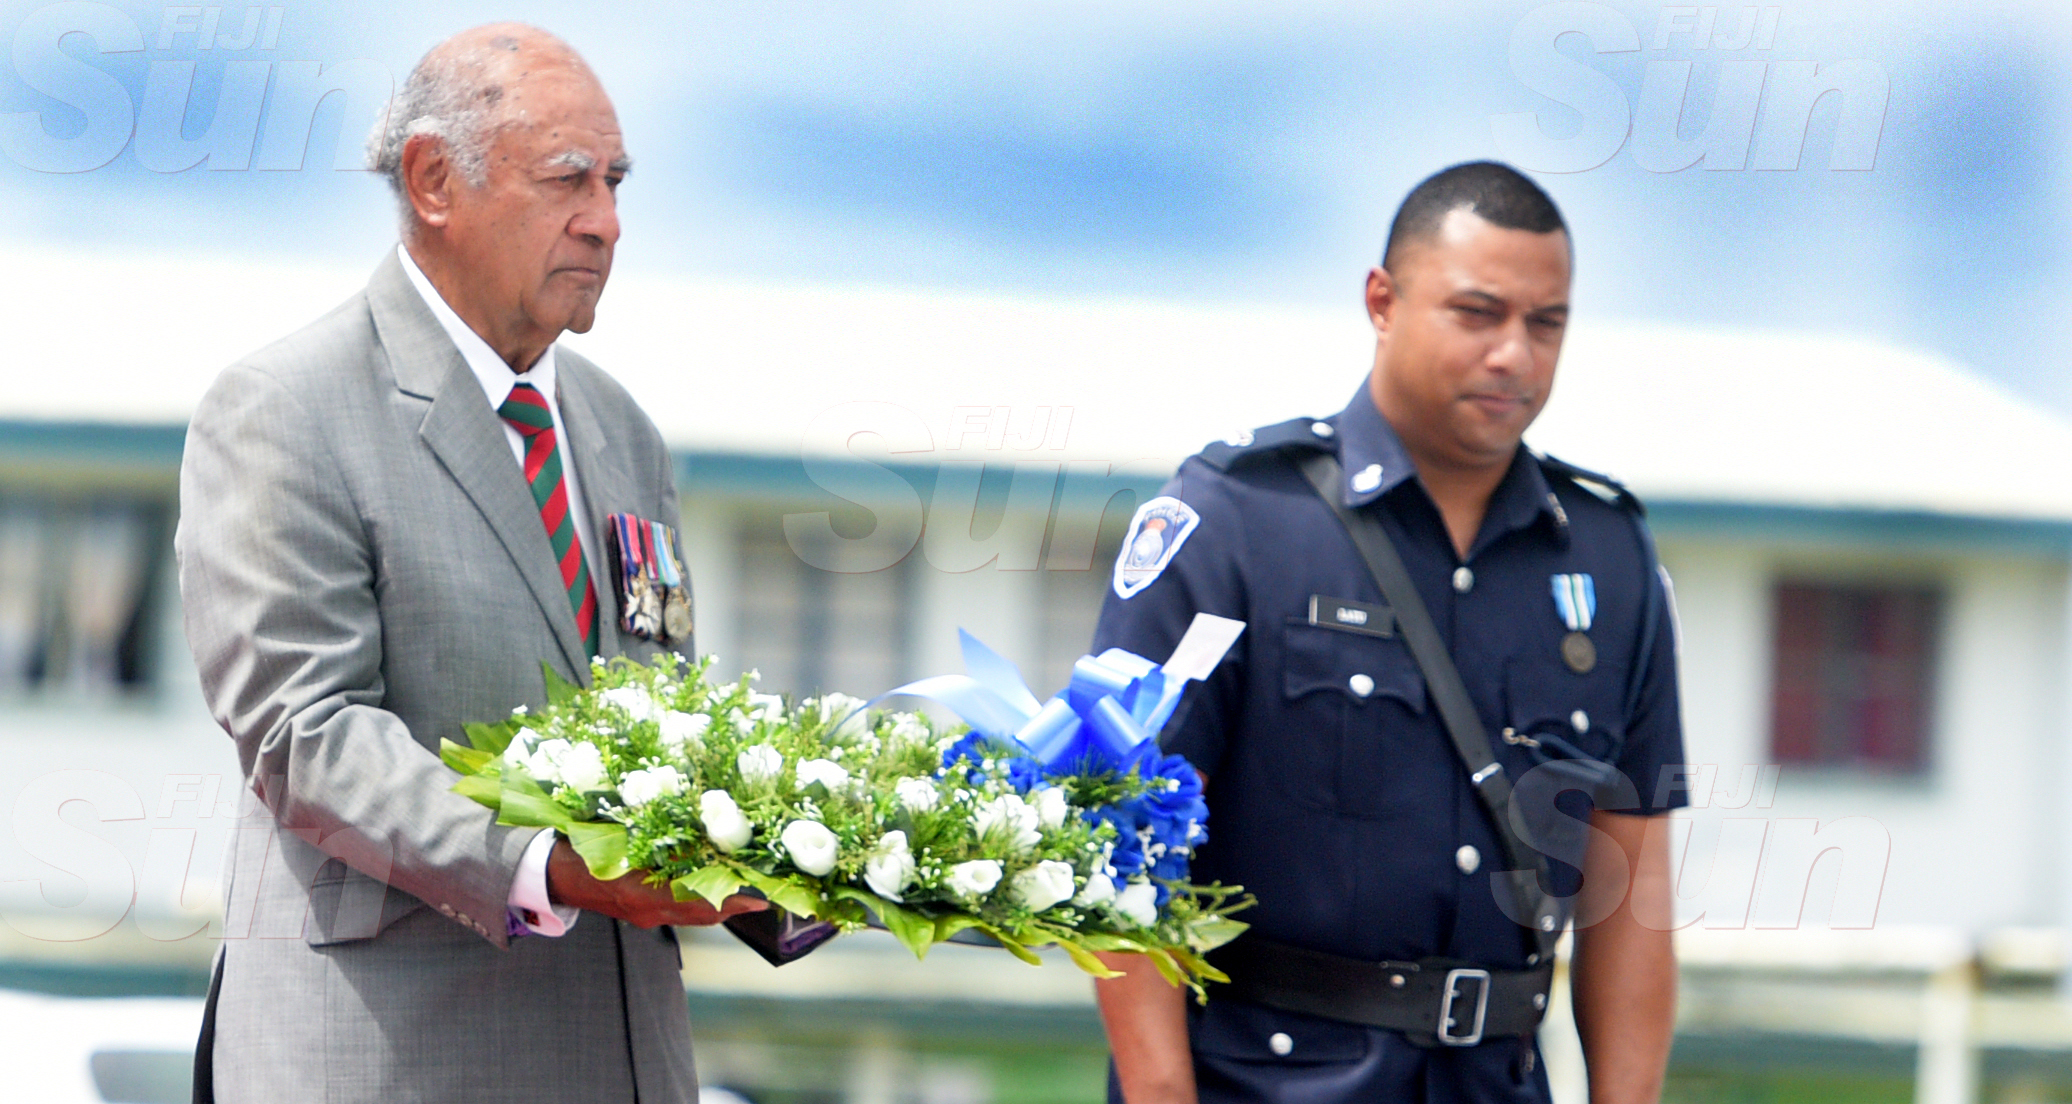 Police Remembrance Day ceremony Chuief Guest, Speaker  of Parliament Ratu Epeli Nailatikau during wreath laying    at Police Special Response Unit on September 29, 2020. Photo: Ronald Kumar.